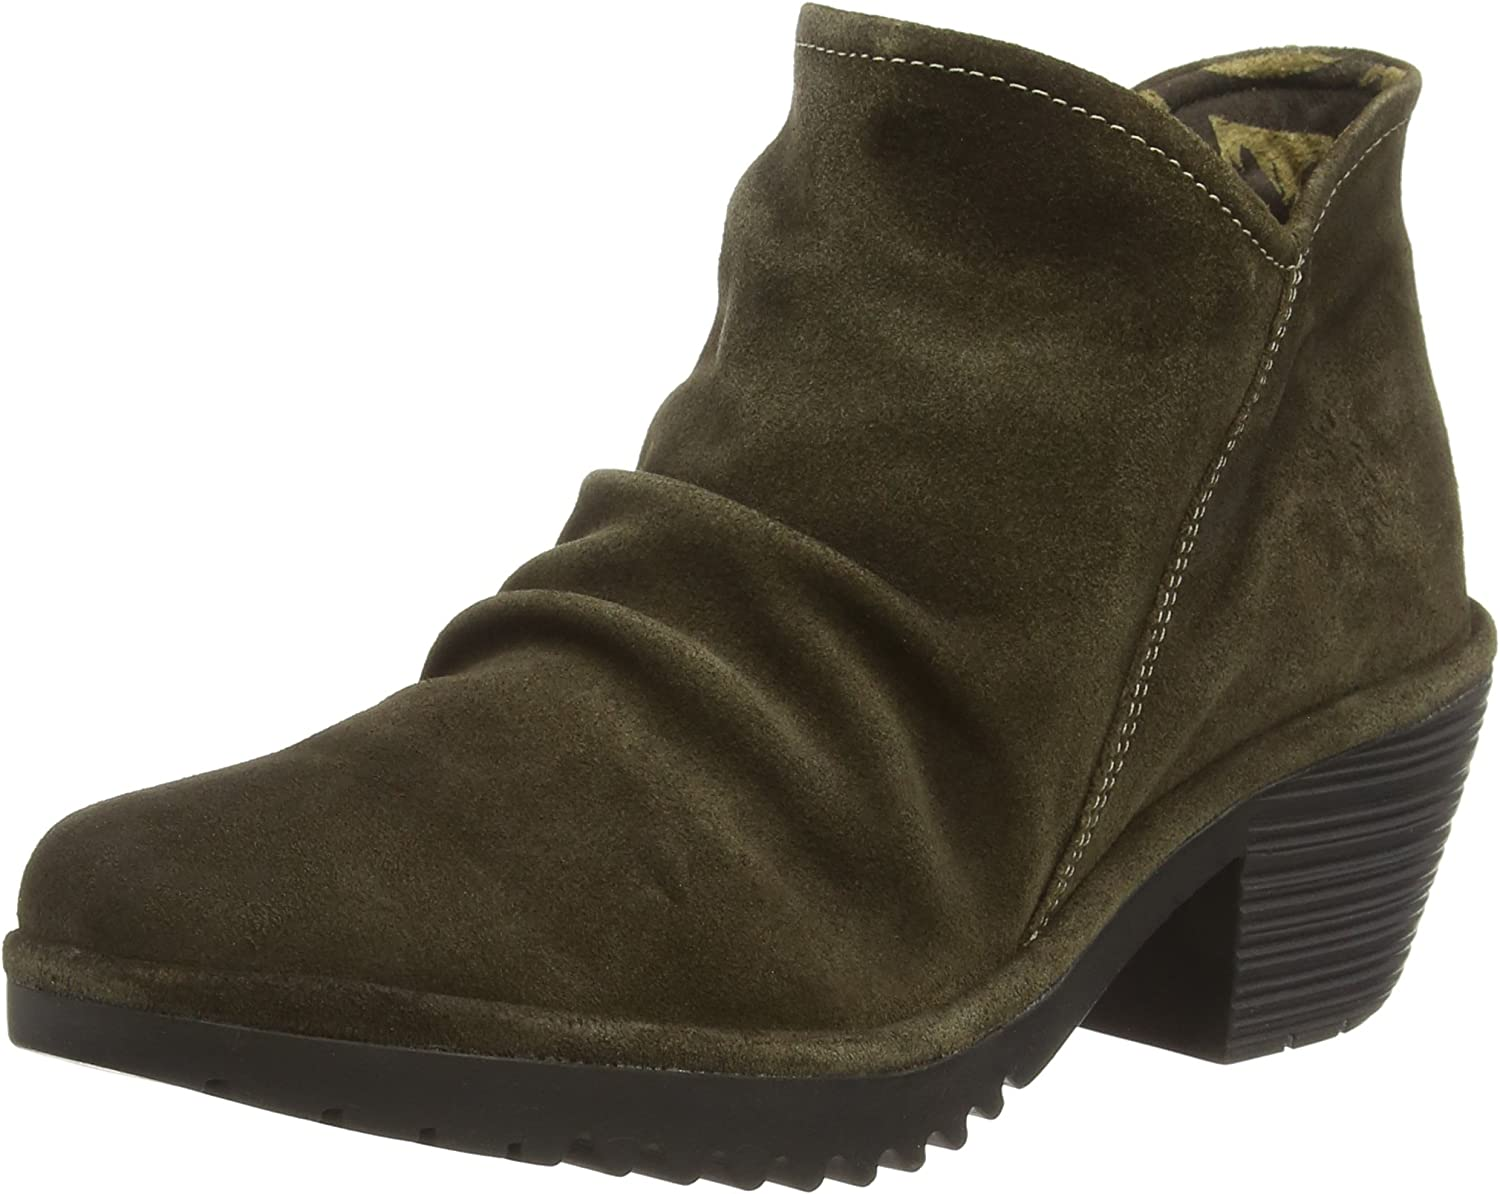 FLY London Girl's Ankle Boots, Women 2